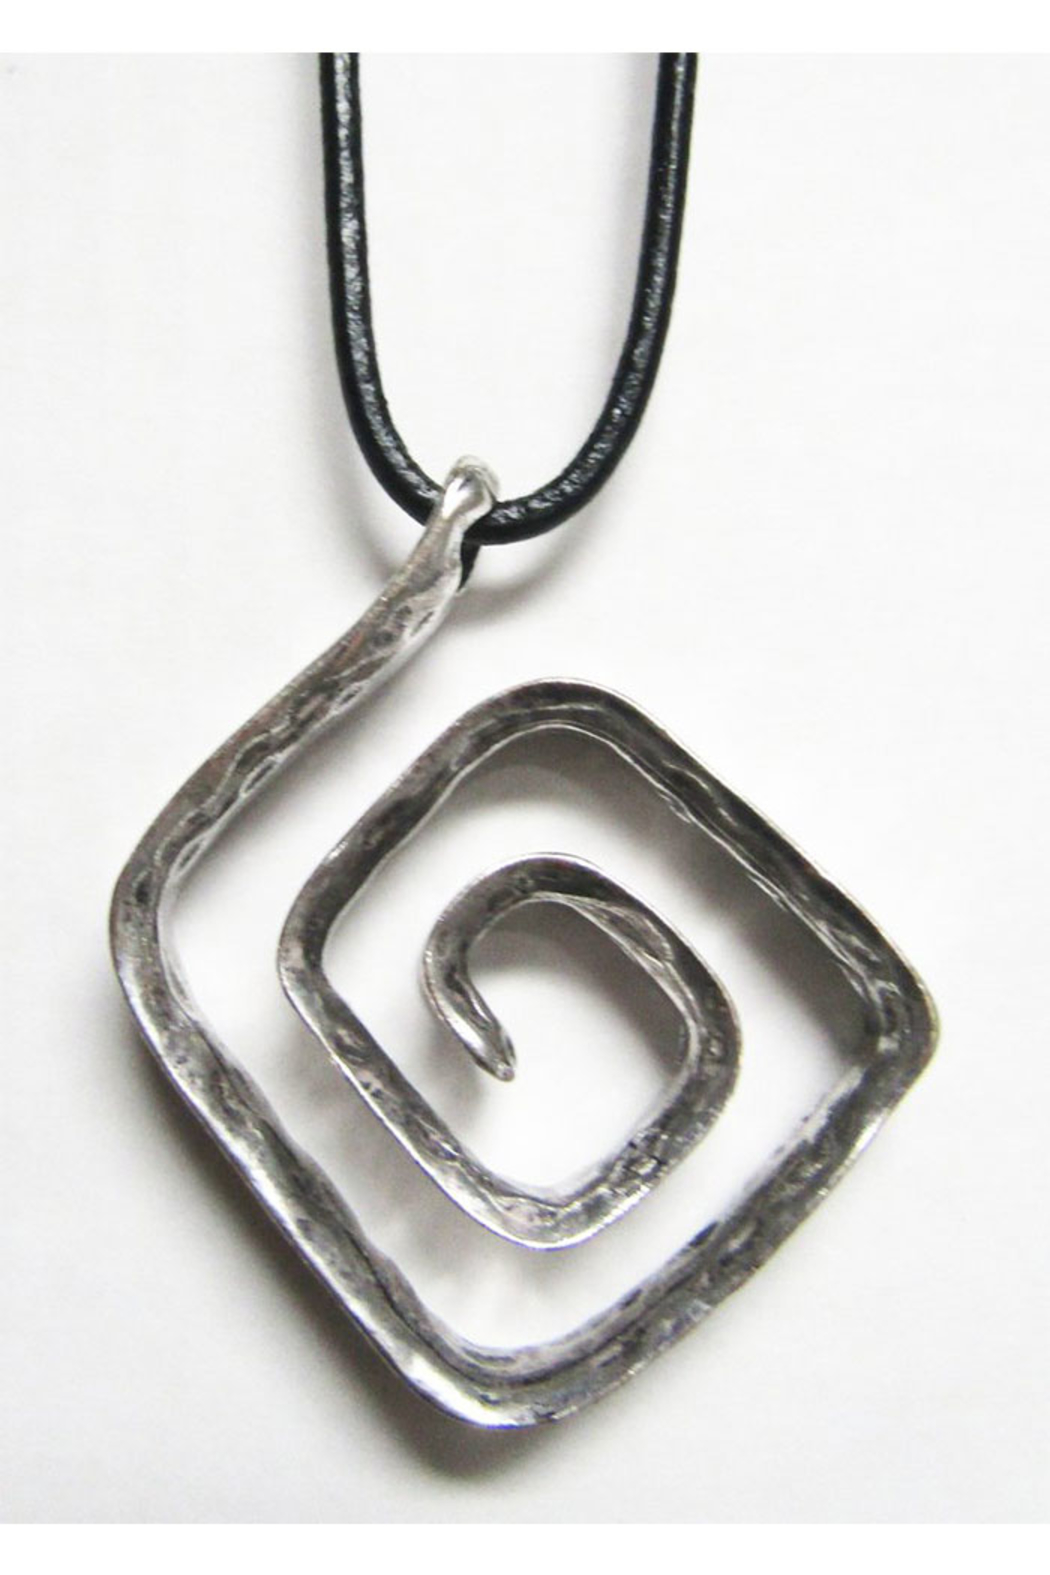 KIMBALS Long Black Cord With Silver Metal Pendant -Swirl - Main Image